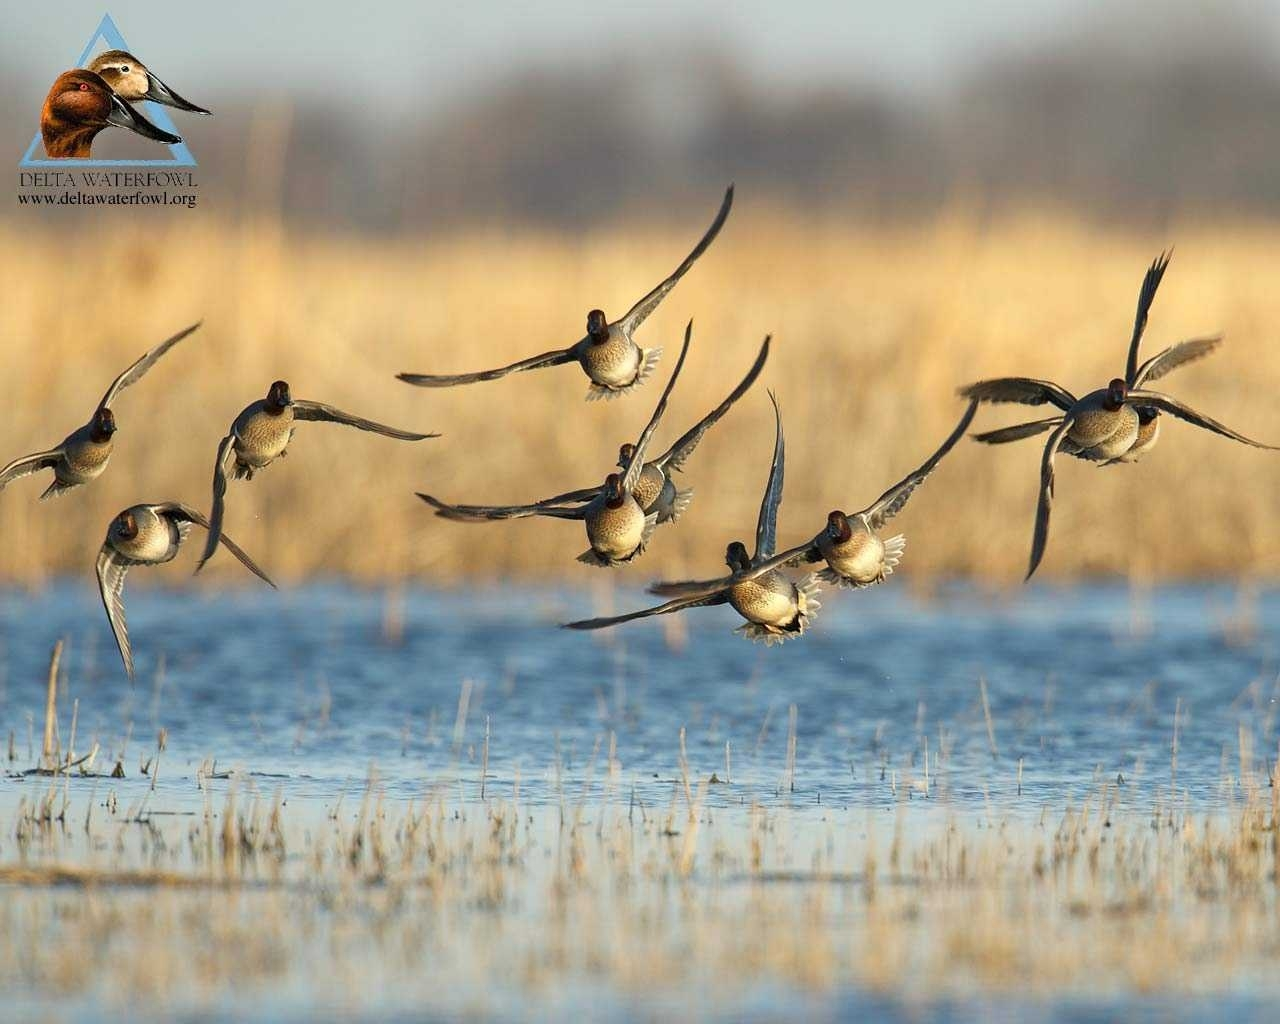 duck hunting wallpaper high quality full hd pics of mobile phones